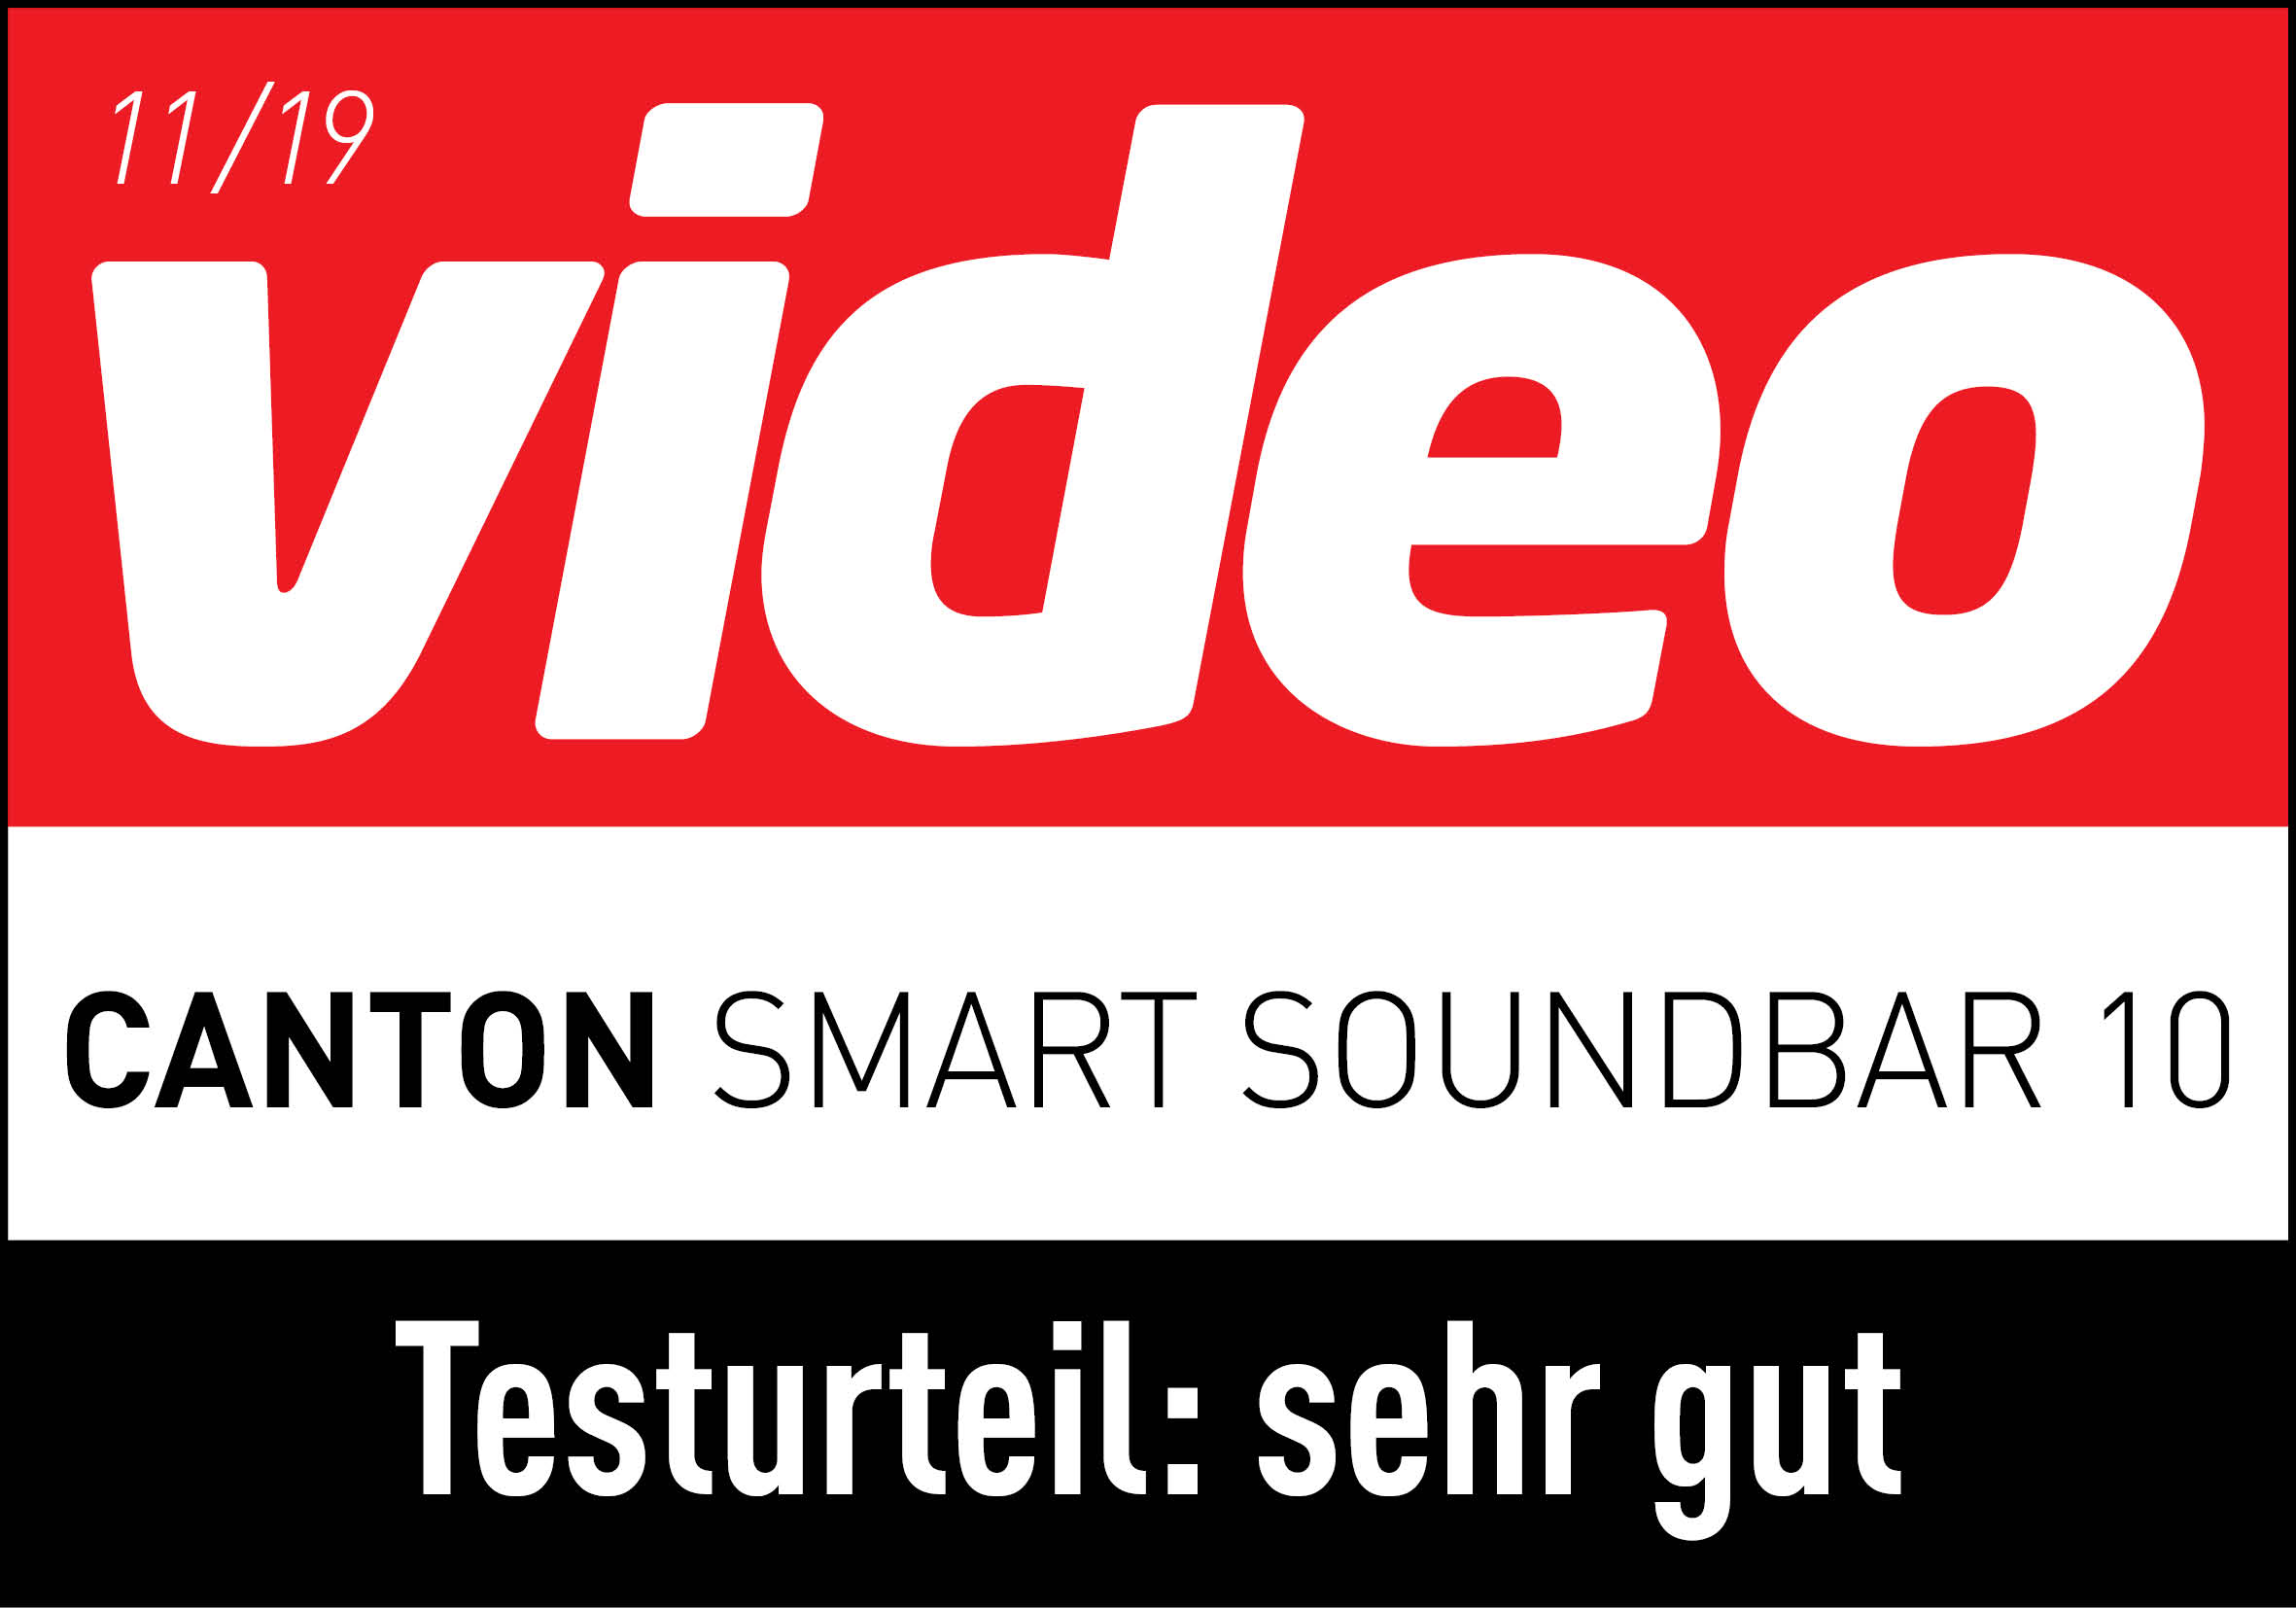 Smart_Soundbar_10_Sub_8_Testurteil-sehr-gut_video-11-19IBR1LXFHBOIWr